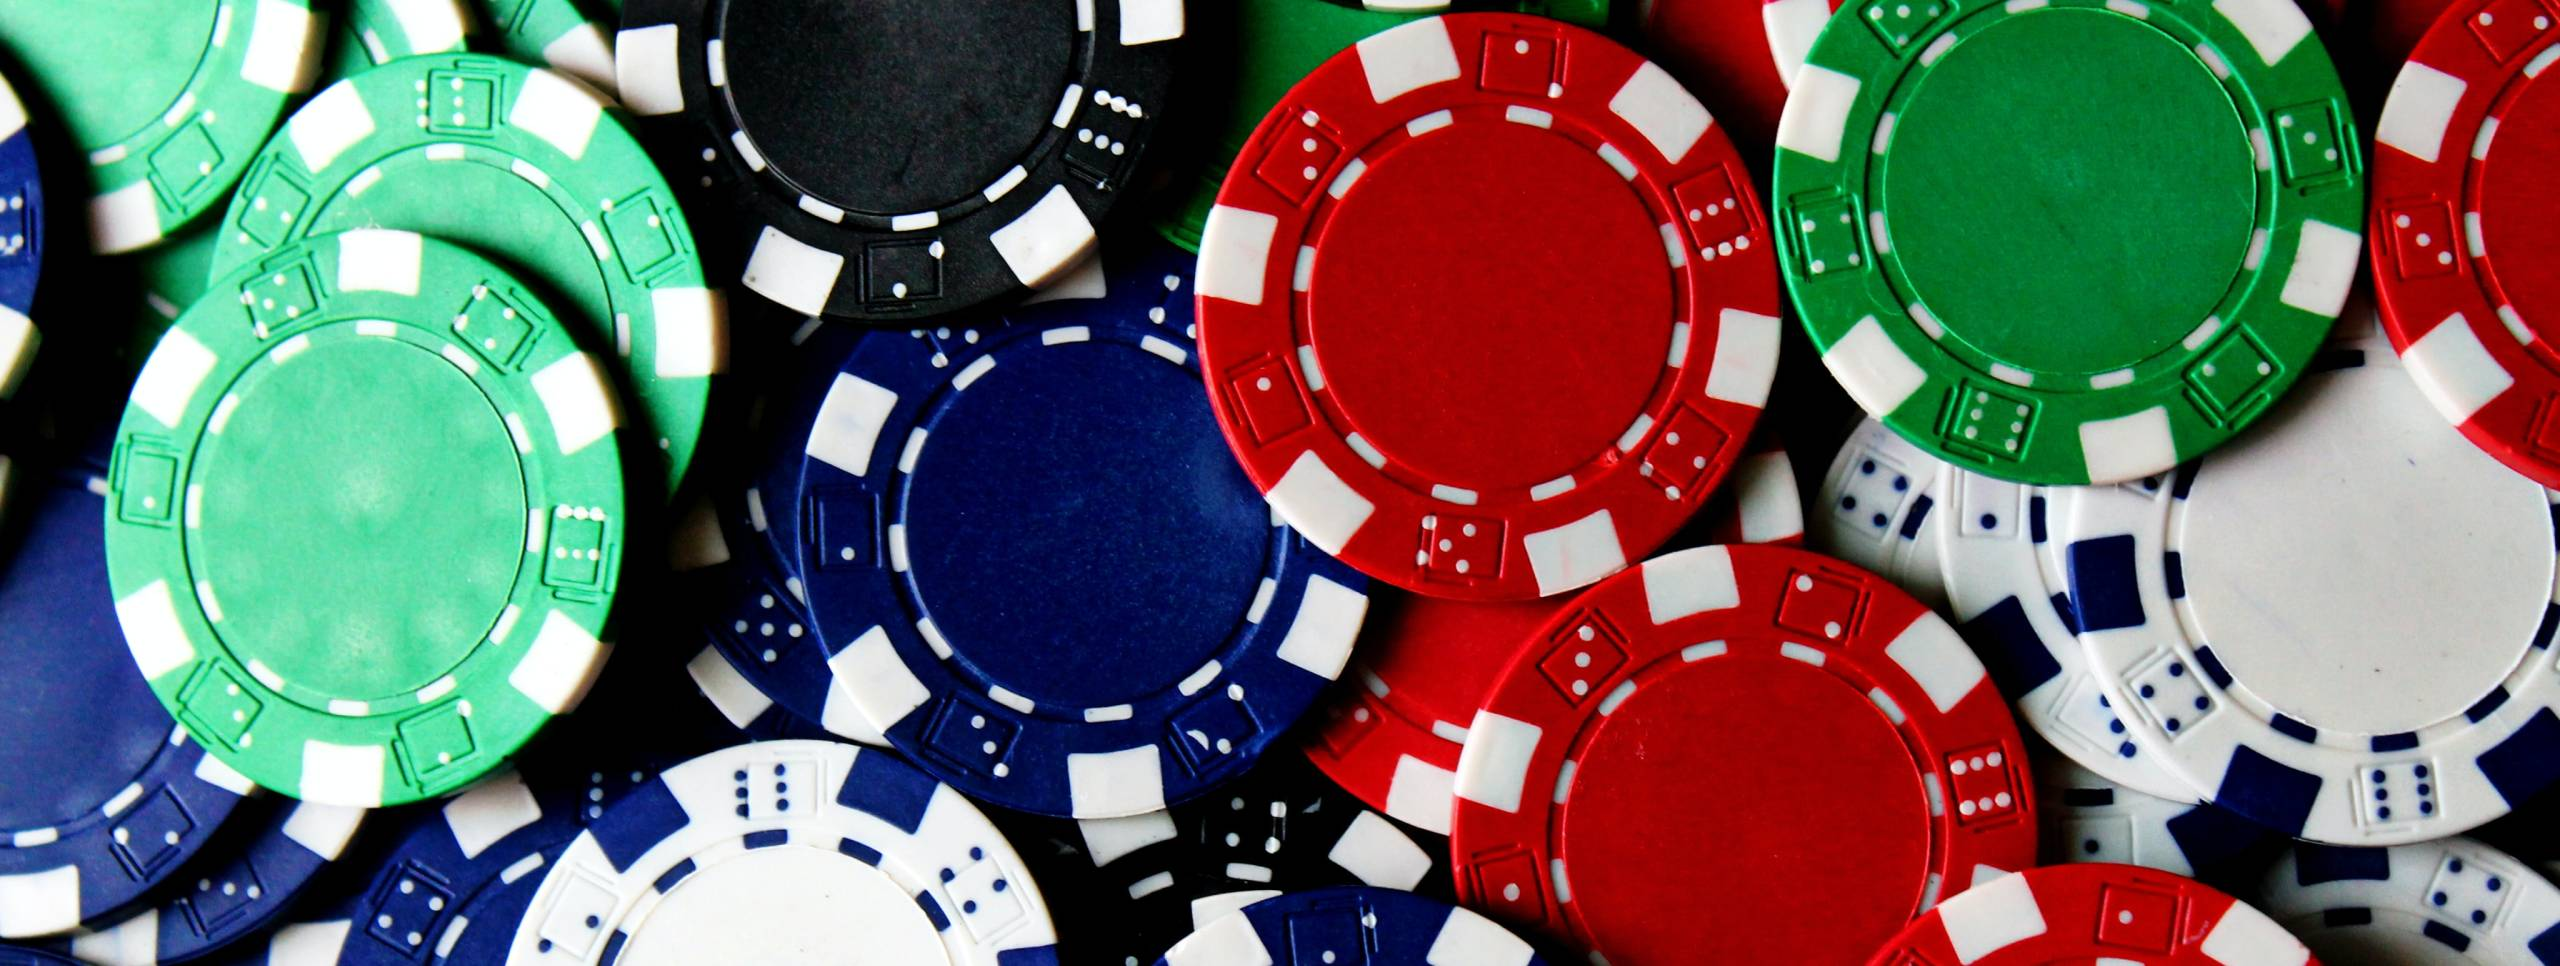 Table Games Chips